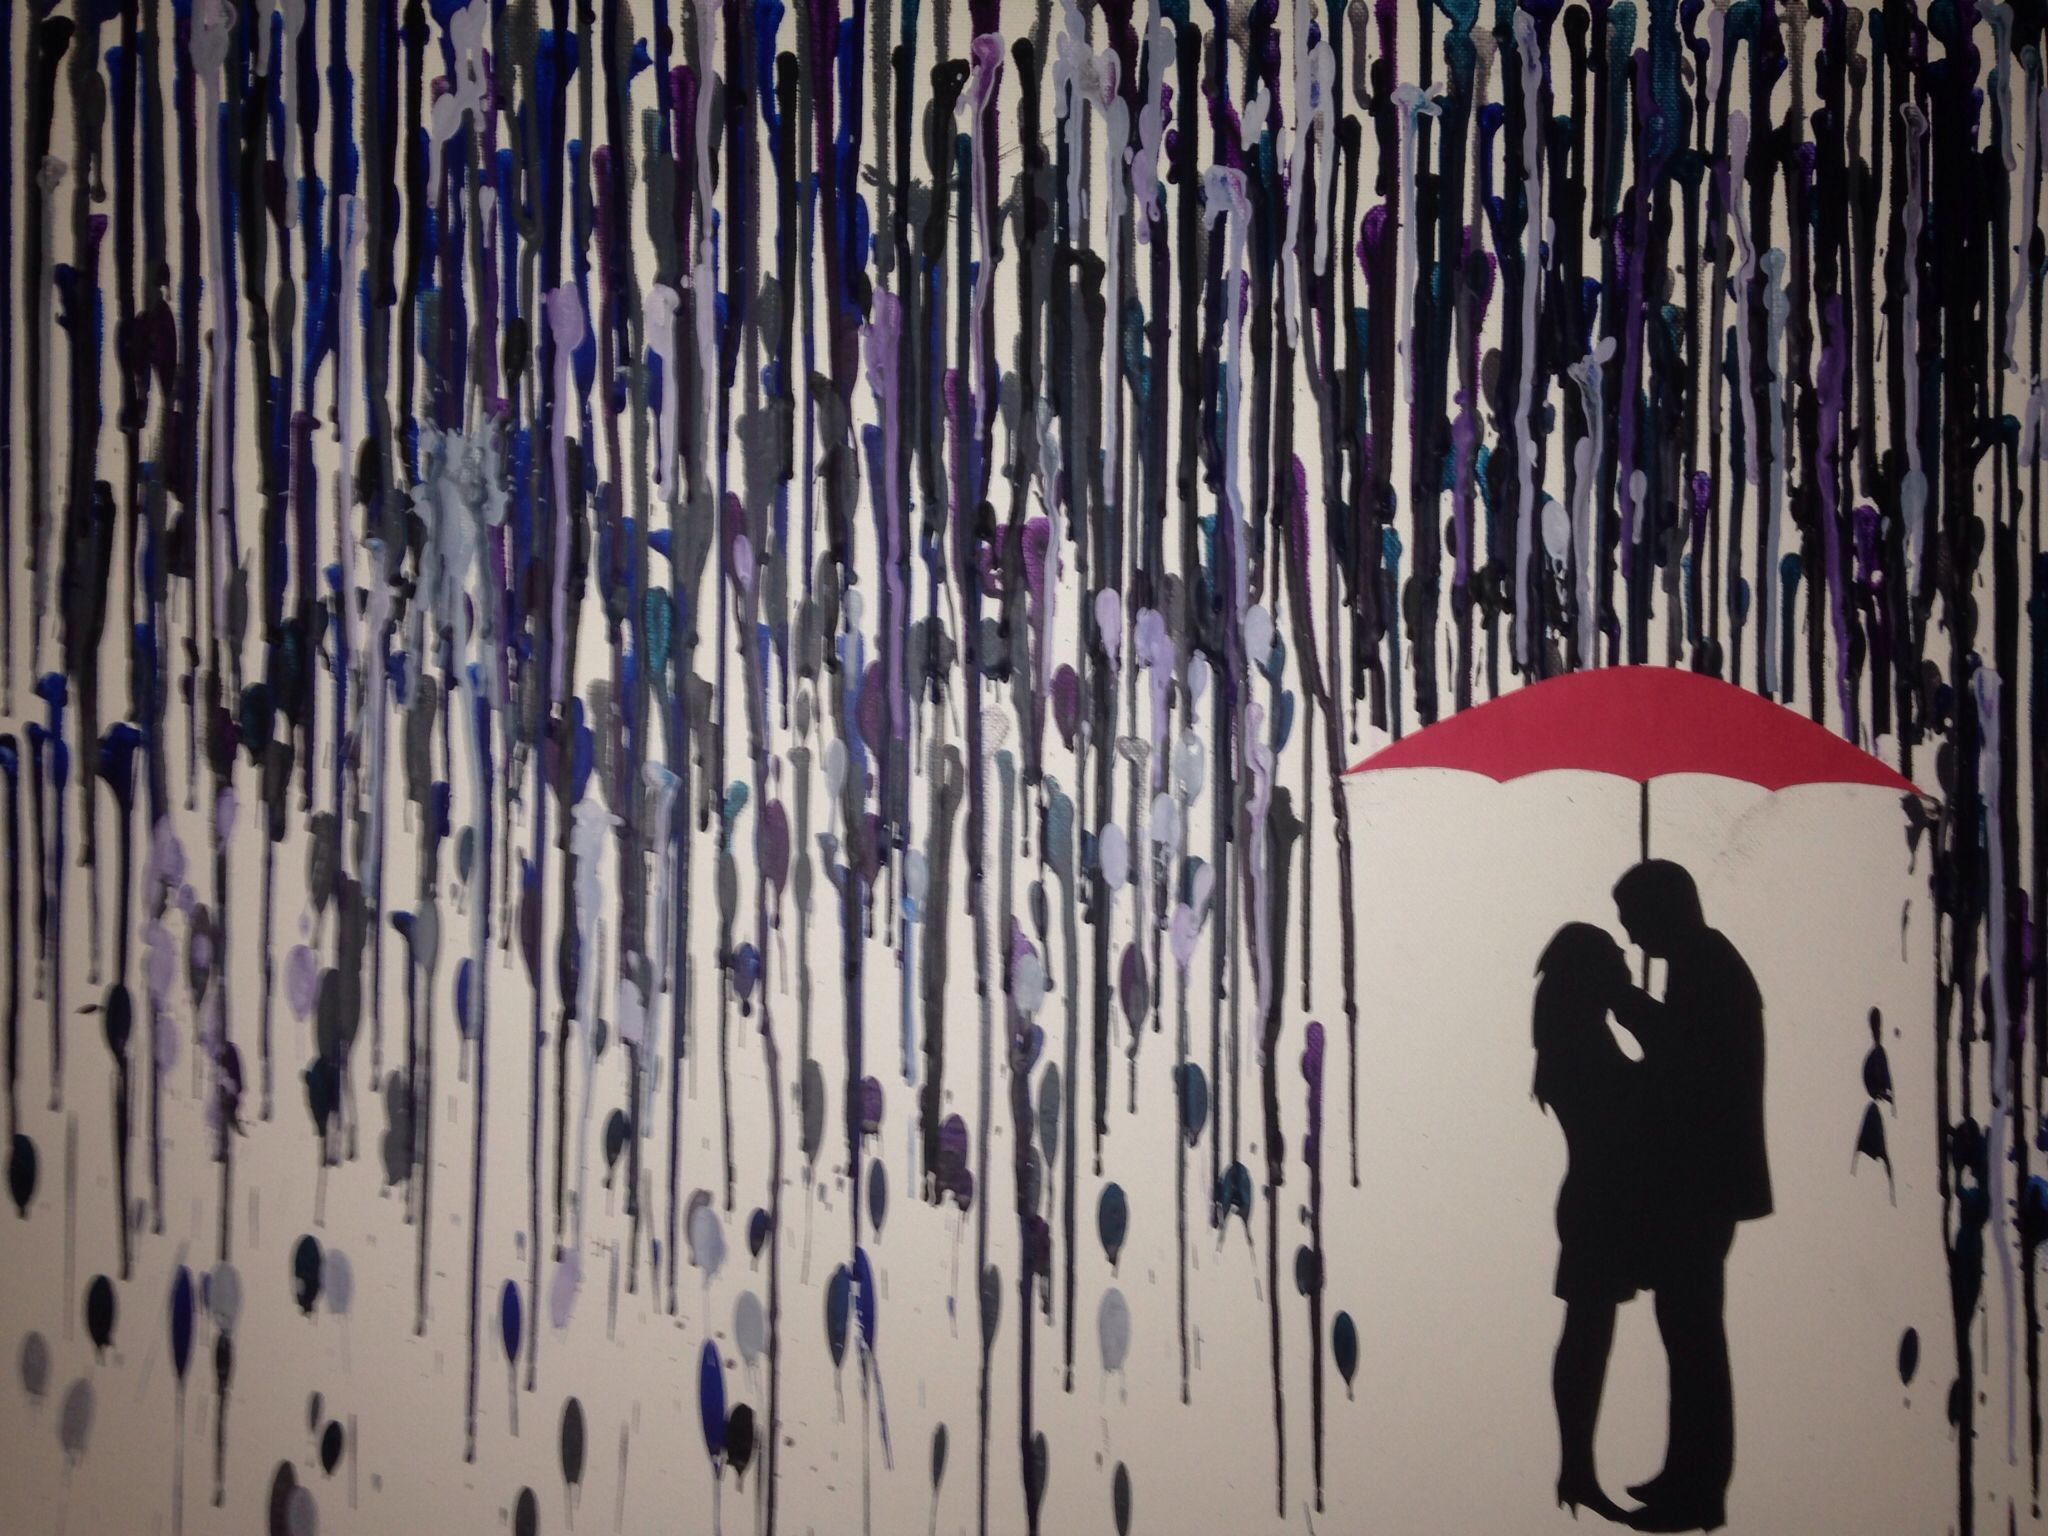 For My Lady (Wax Rain, Melted Crayon Art